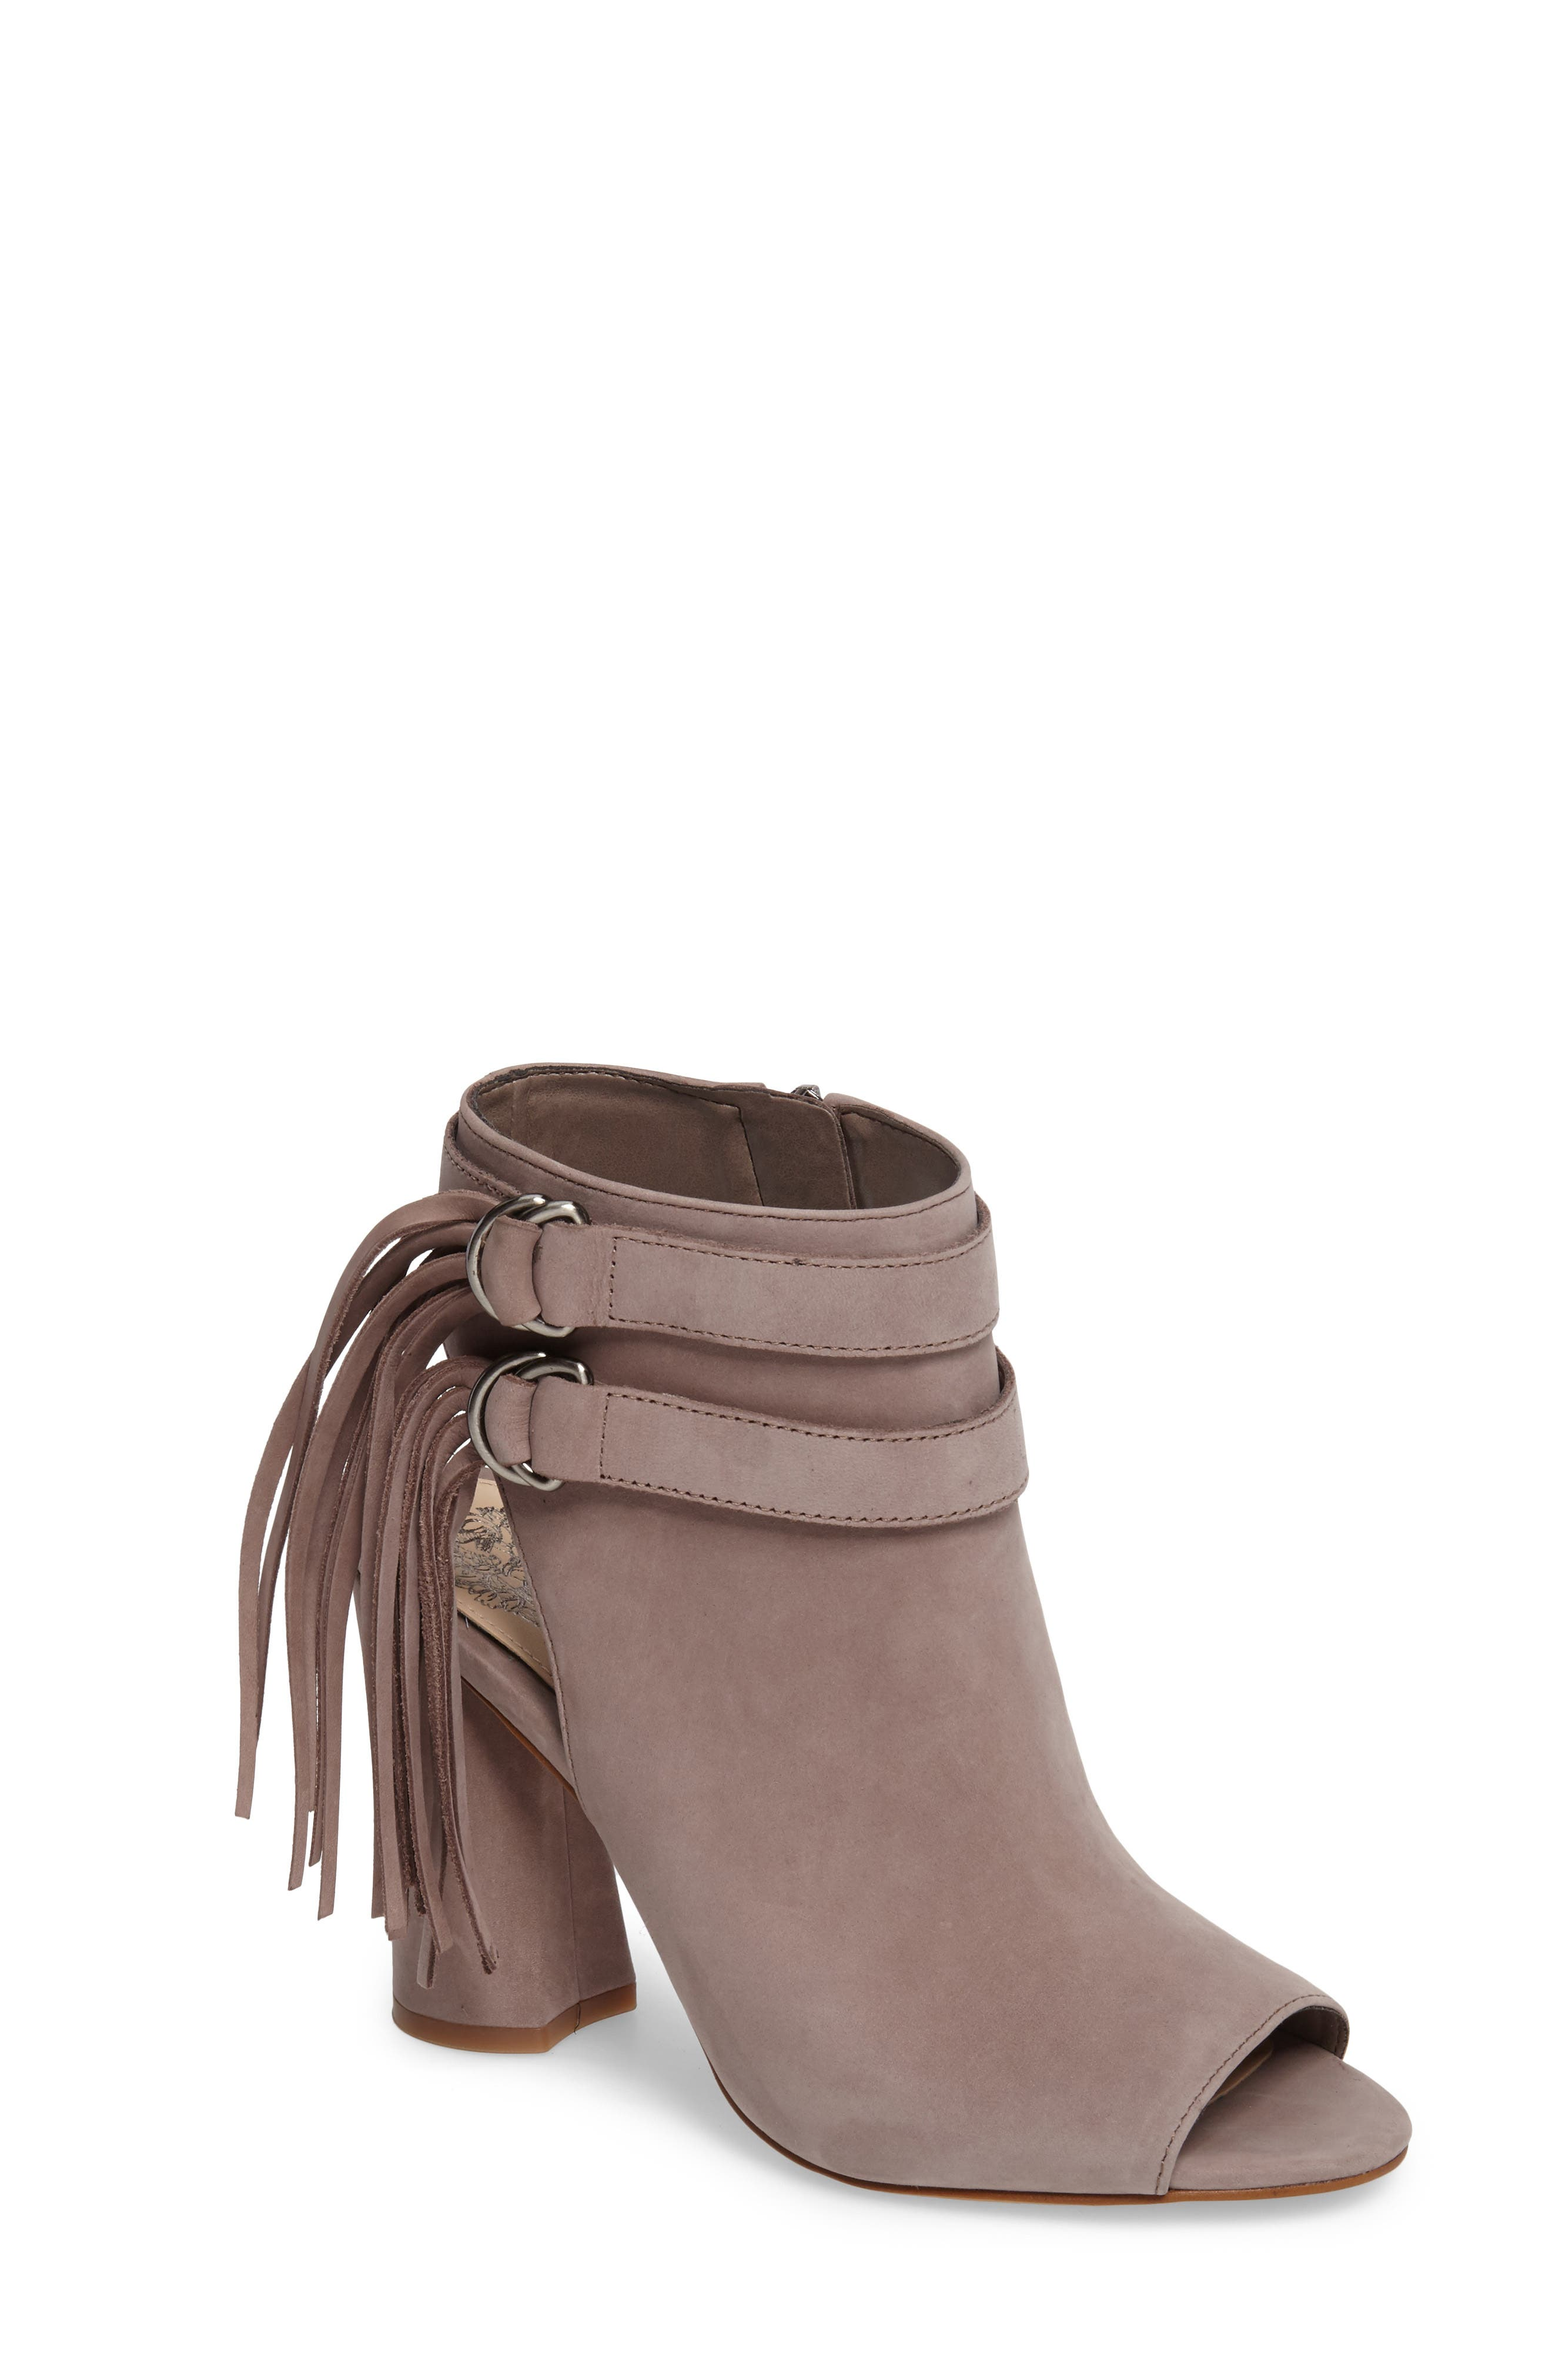 Alternate Image 1 Selected - Vince Camuto Catinca Bootie (Women)